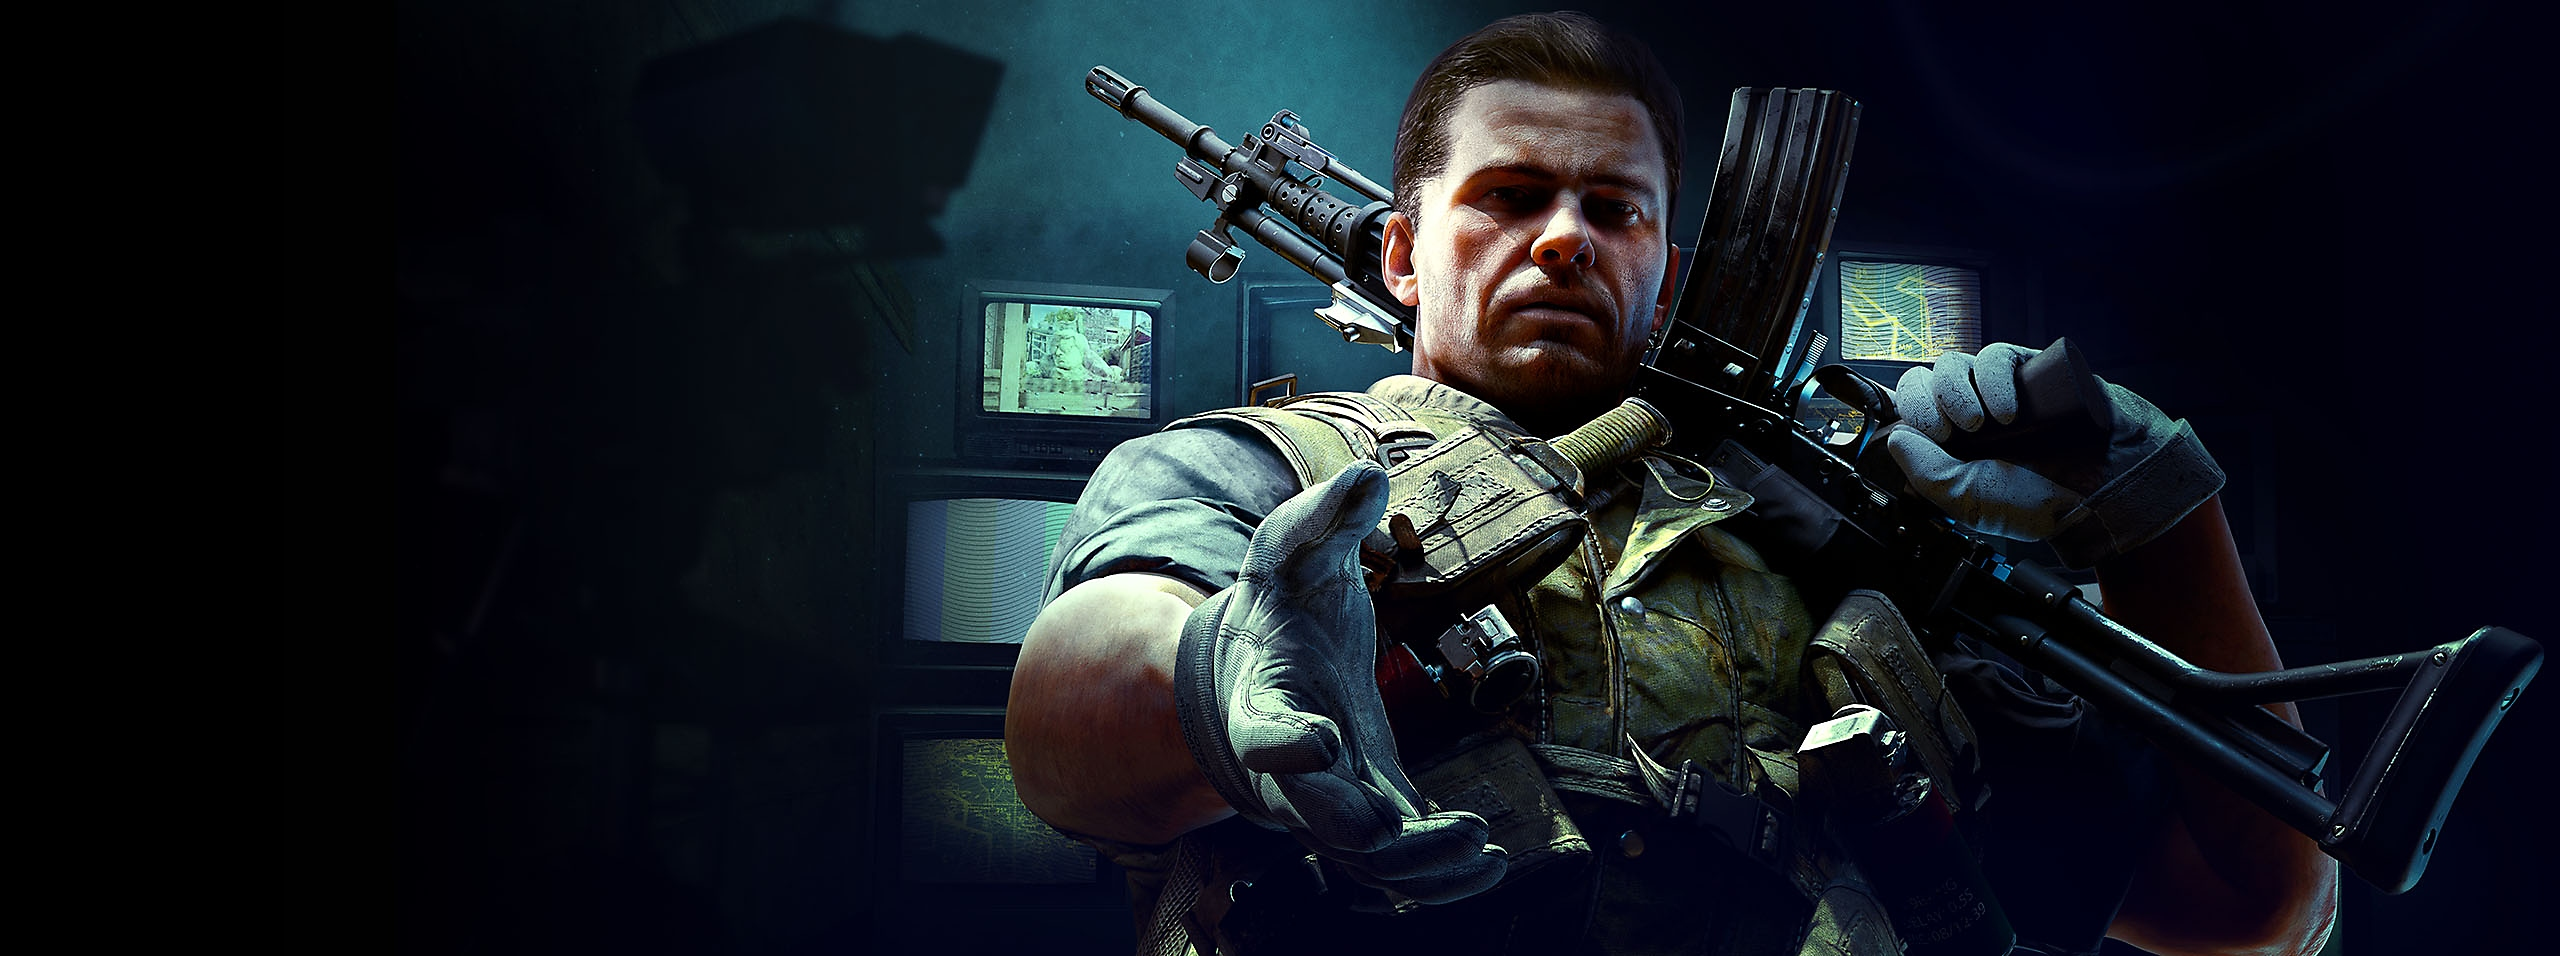 Call of Duty: Black Ops Cold War - arte clave